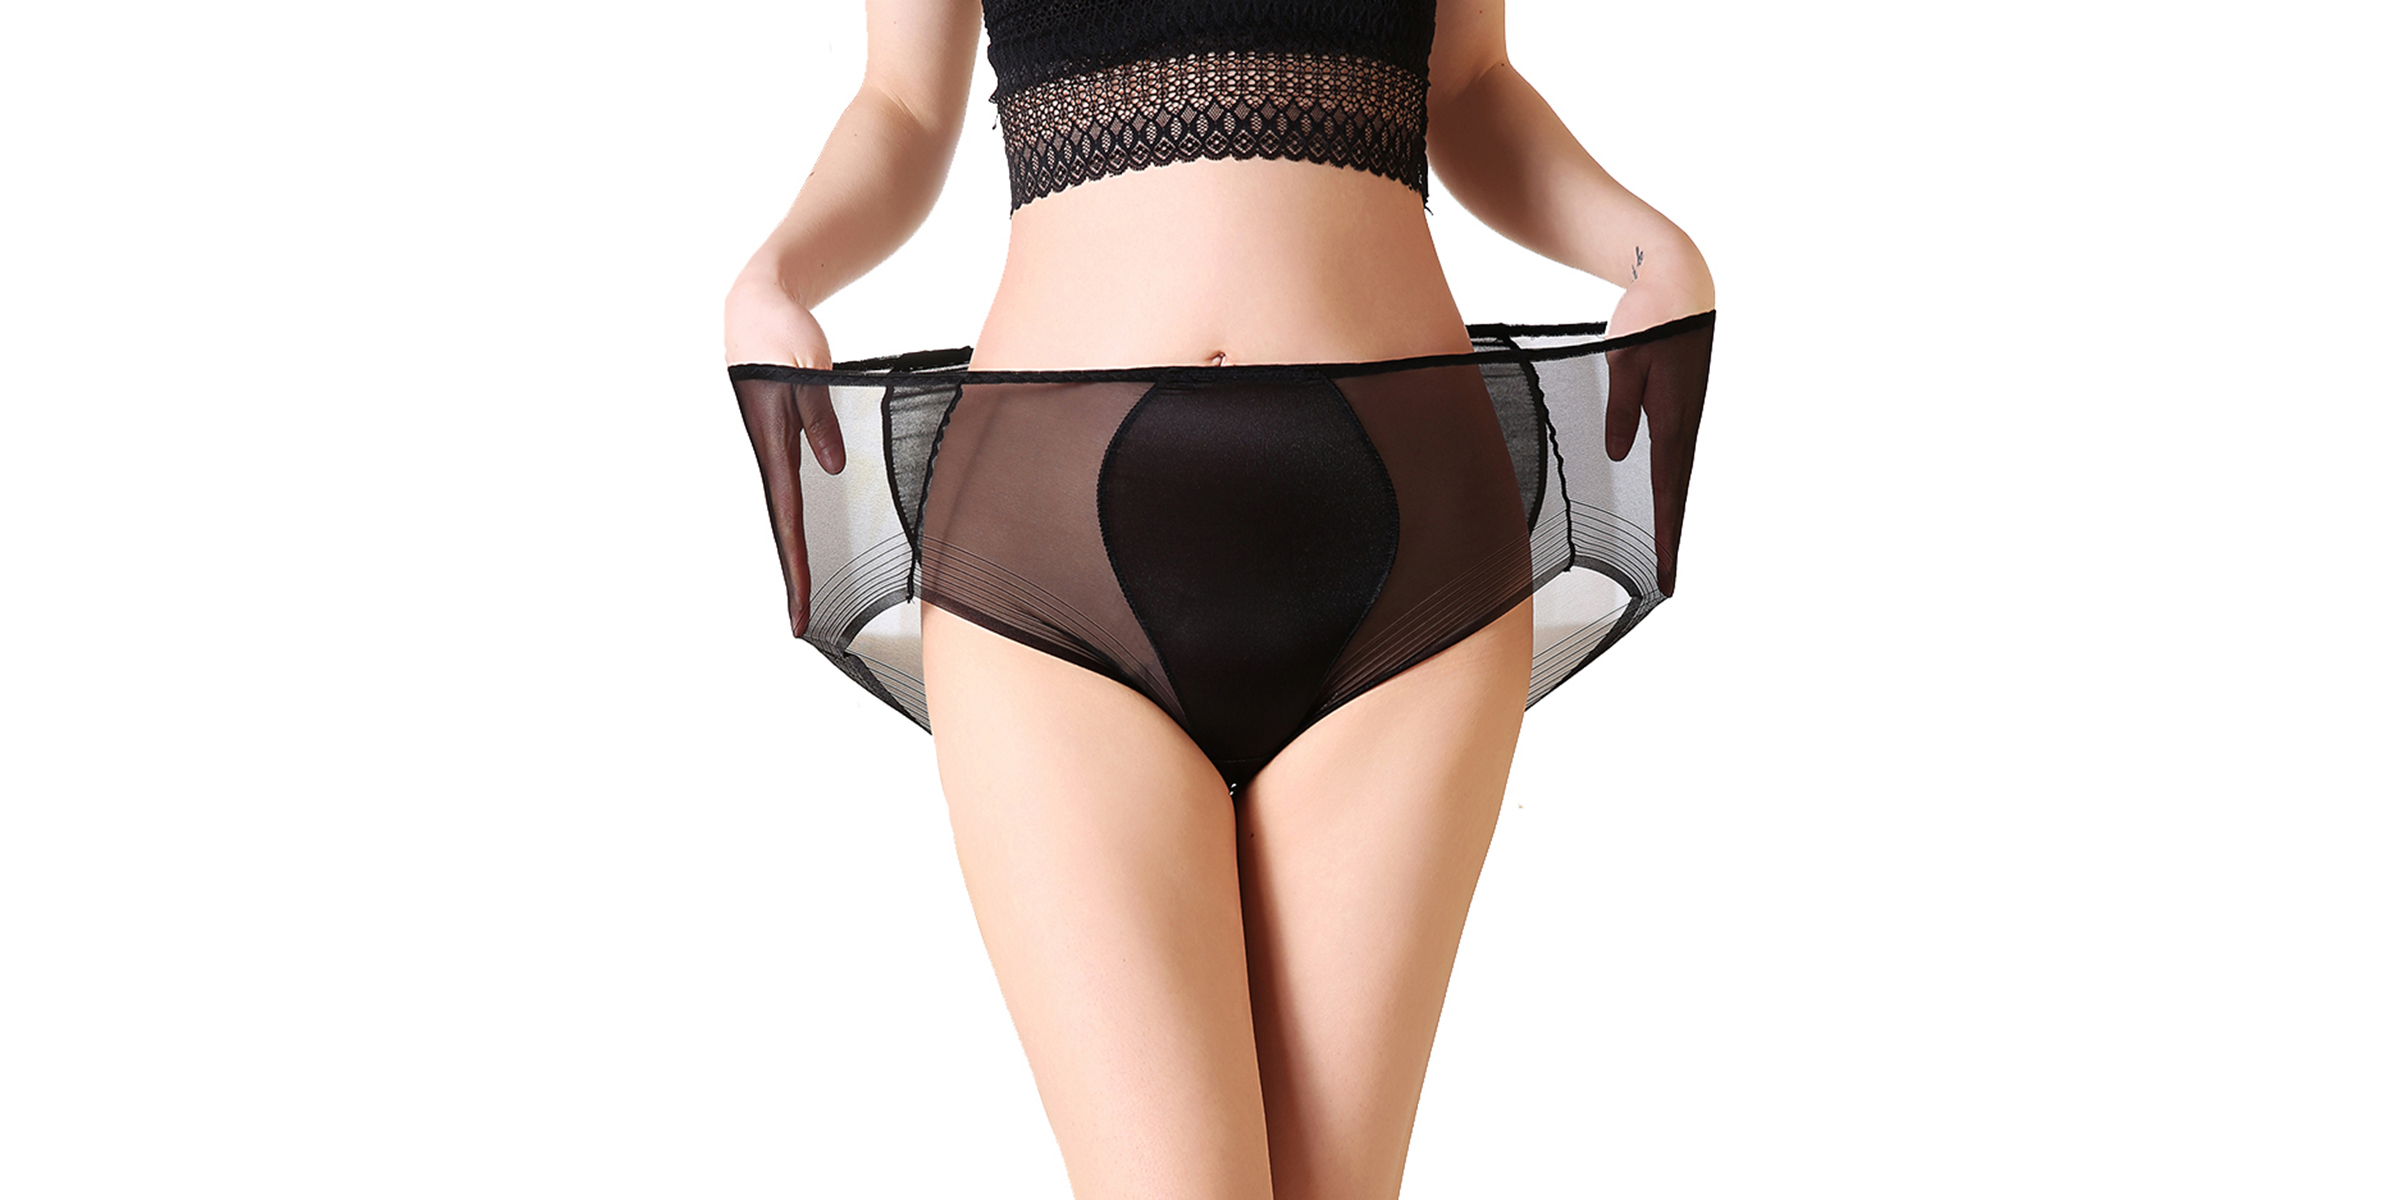 purchase cheap quality sale Plus Size Baby using thin models to advertise plus-size lingerie